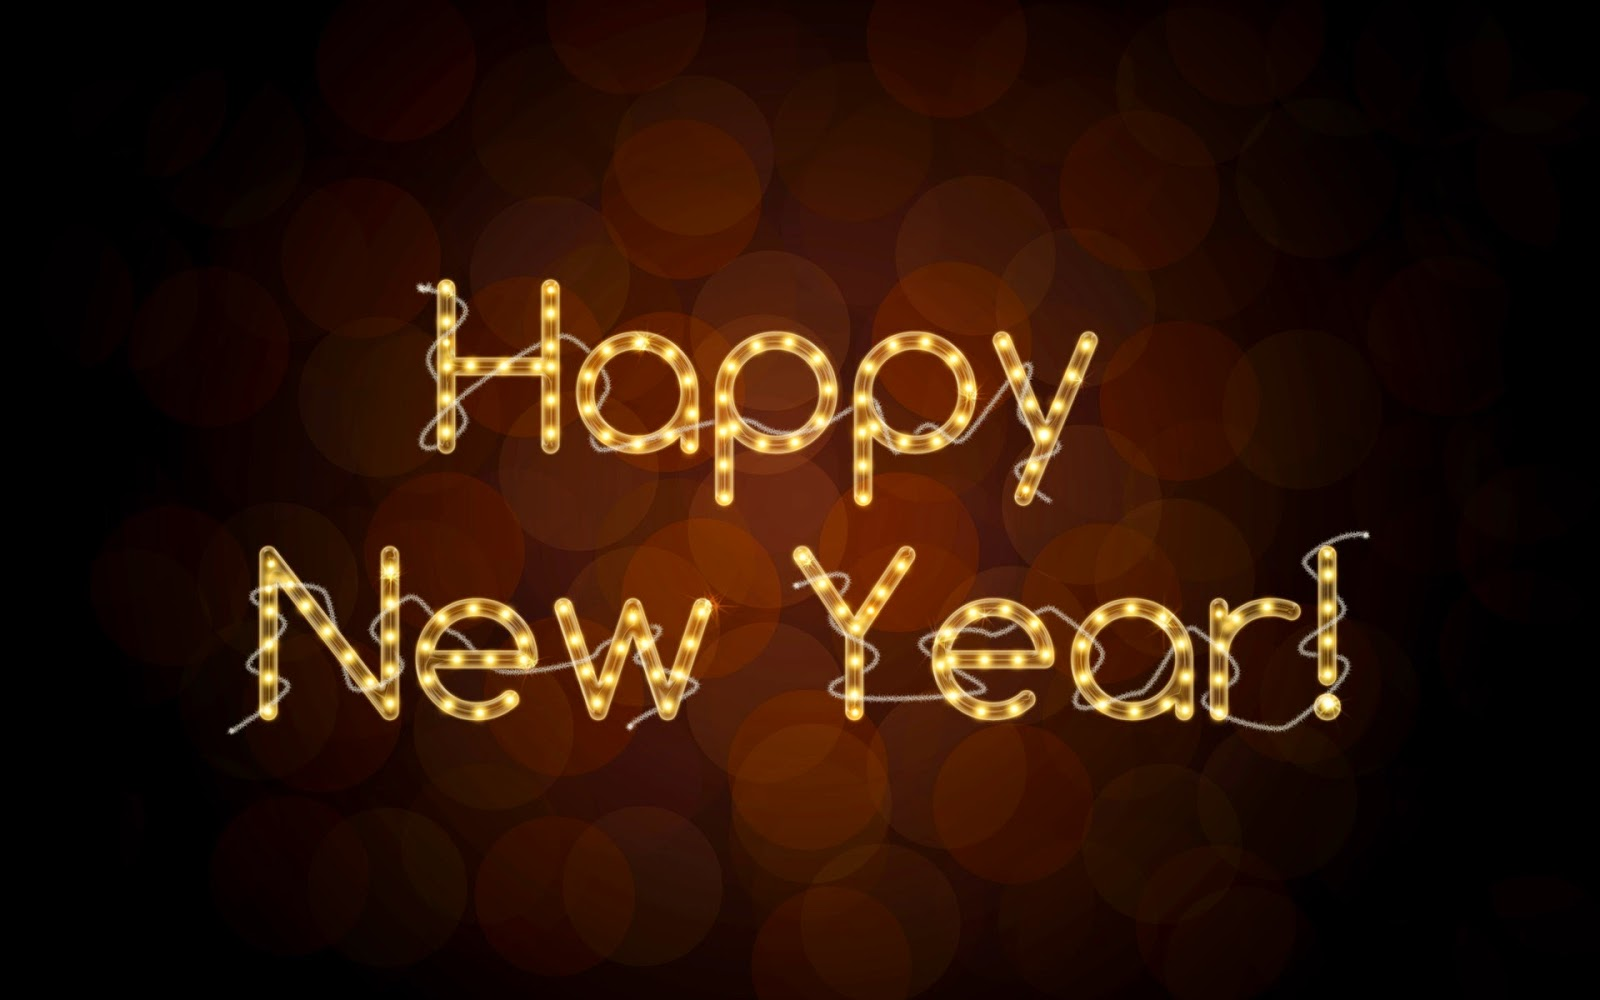 Happy New Year 2020 Image for Lesotho